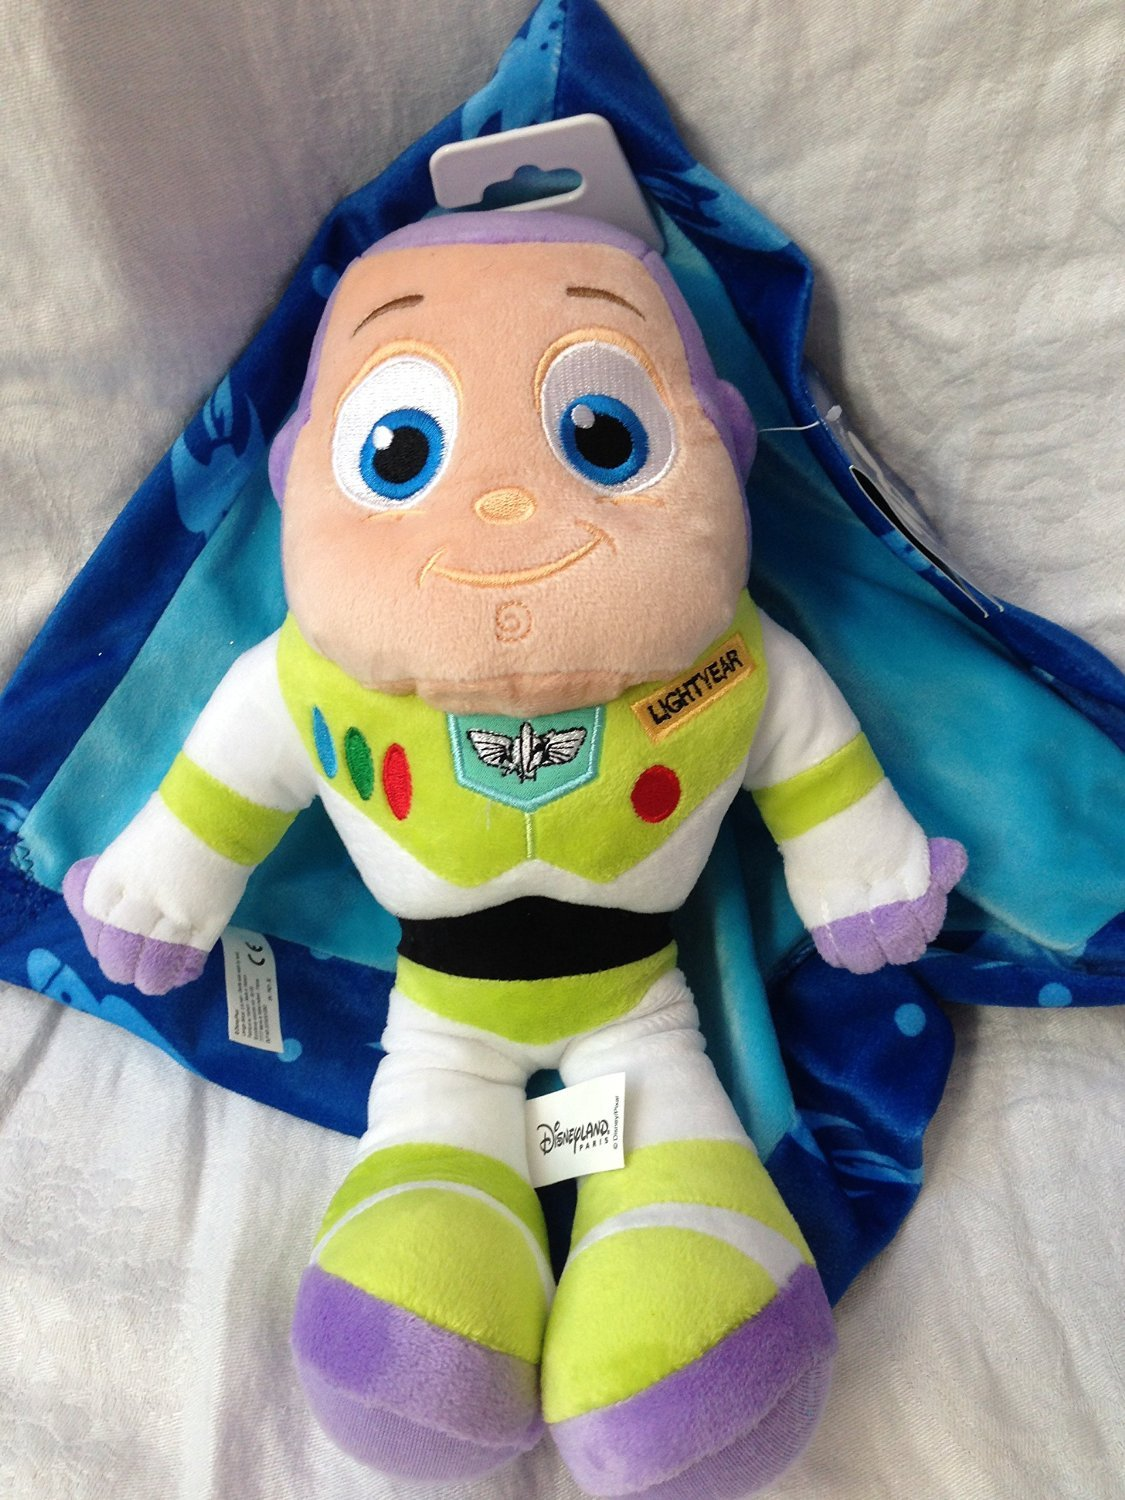 Original authentic Disney Store - Buzz Lightyear felpa con una manta - 33 cm: Amazon.es: Juguetes y juegos